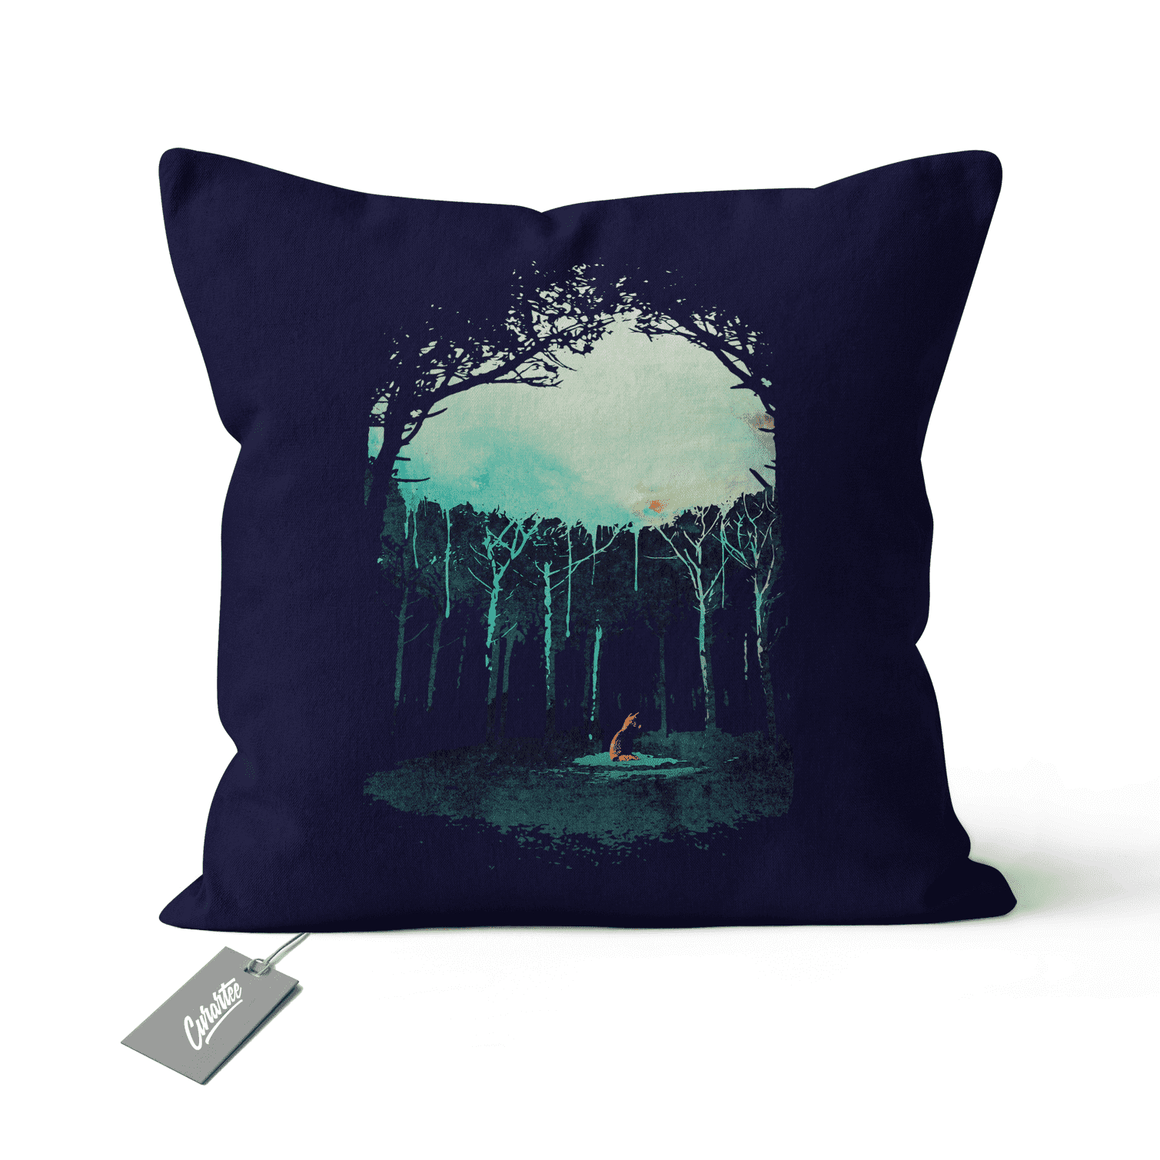 Deep In The Forest Cushion - Premium Artwear Curartee